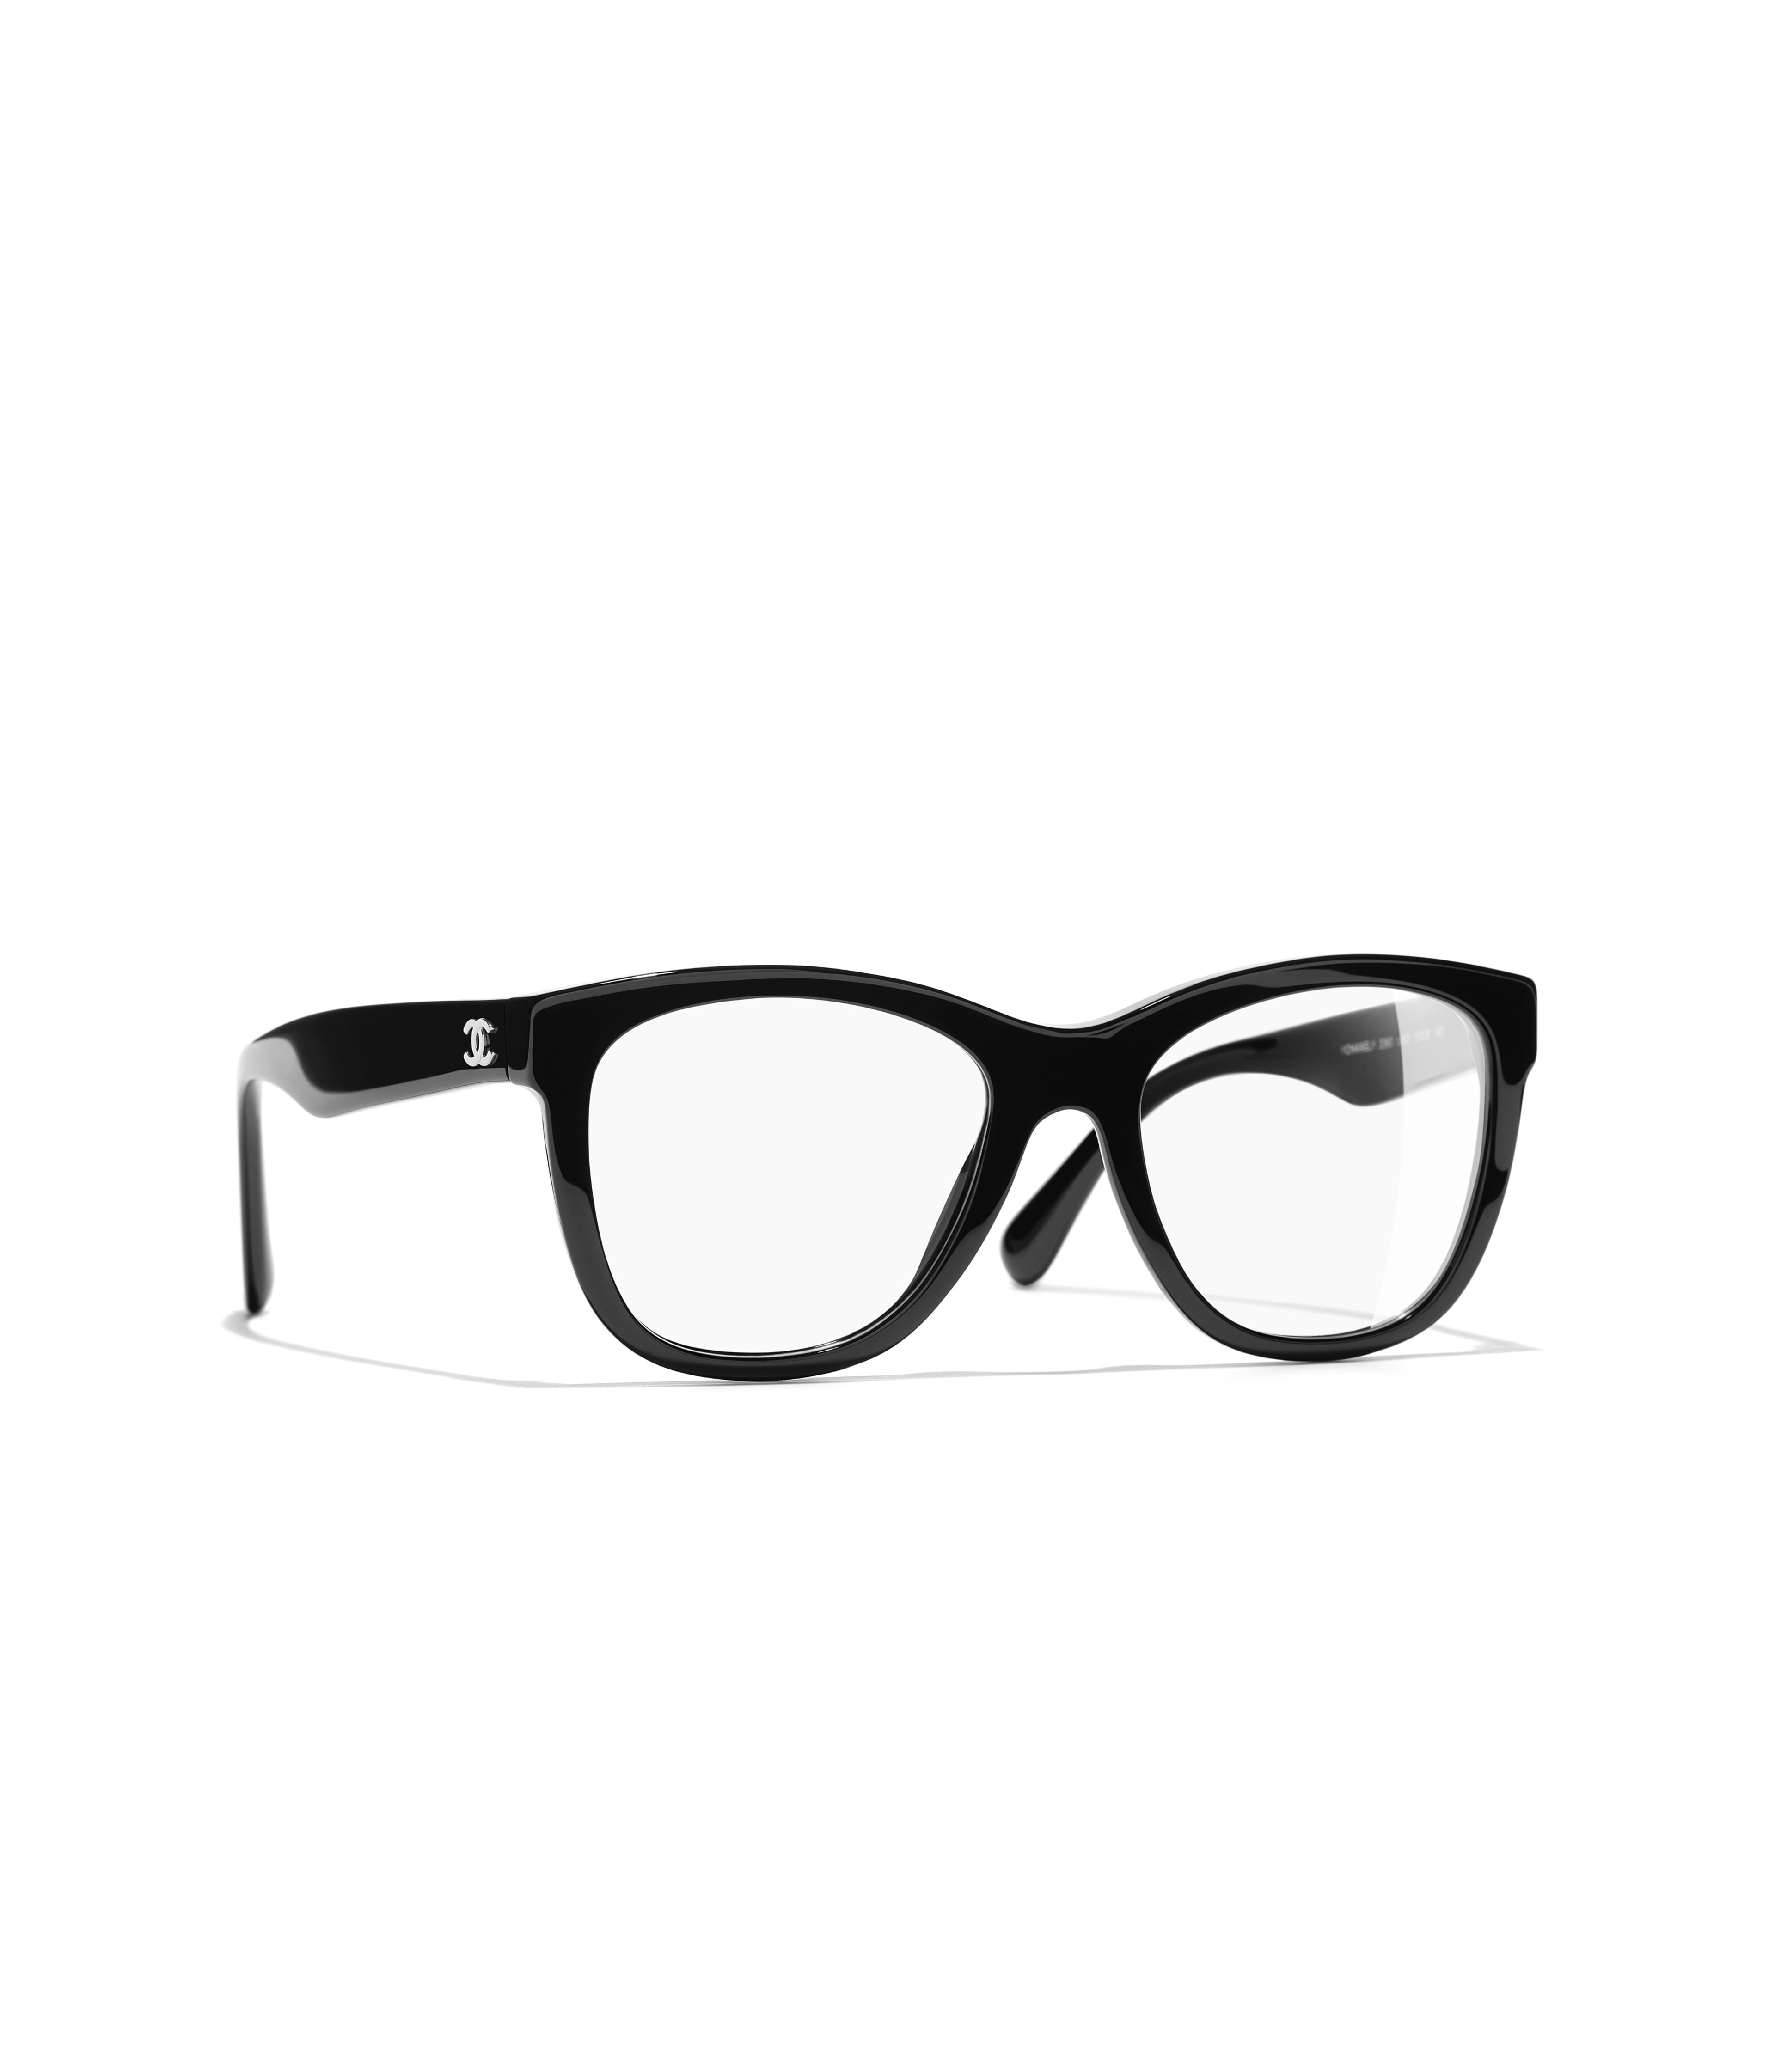 65261f99076 Where To Buy Chanel Glasses - Best Glasses Cnapracticetesting.Com 2018